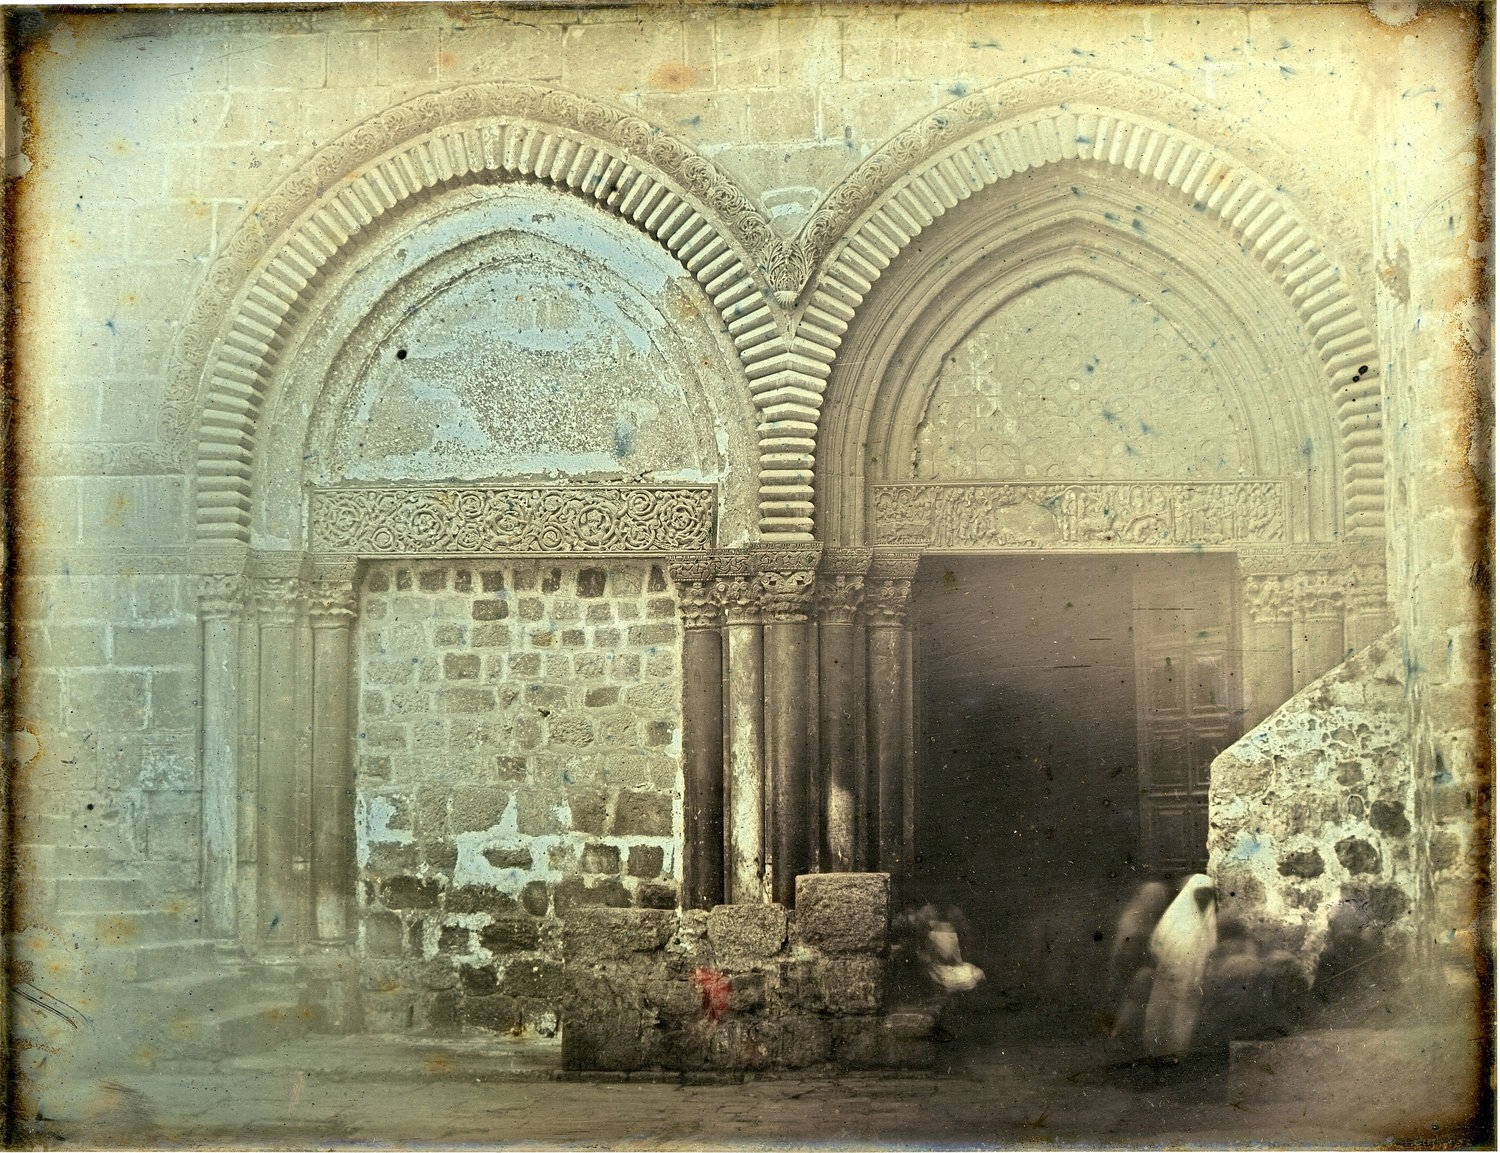 """Portal, Church of the Holy Sepulchre, Jerusalem,"" an 1844 daguerrotype by Girault de Prangey"